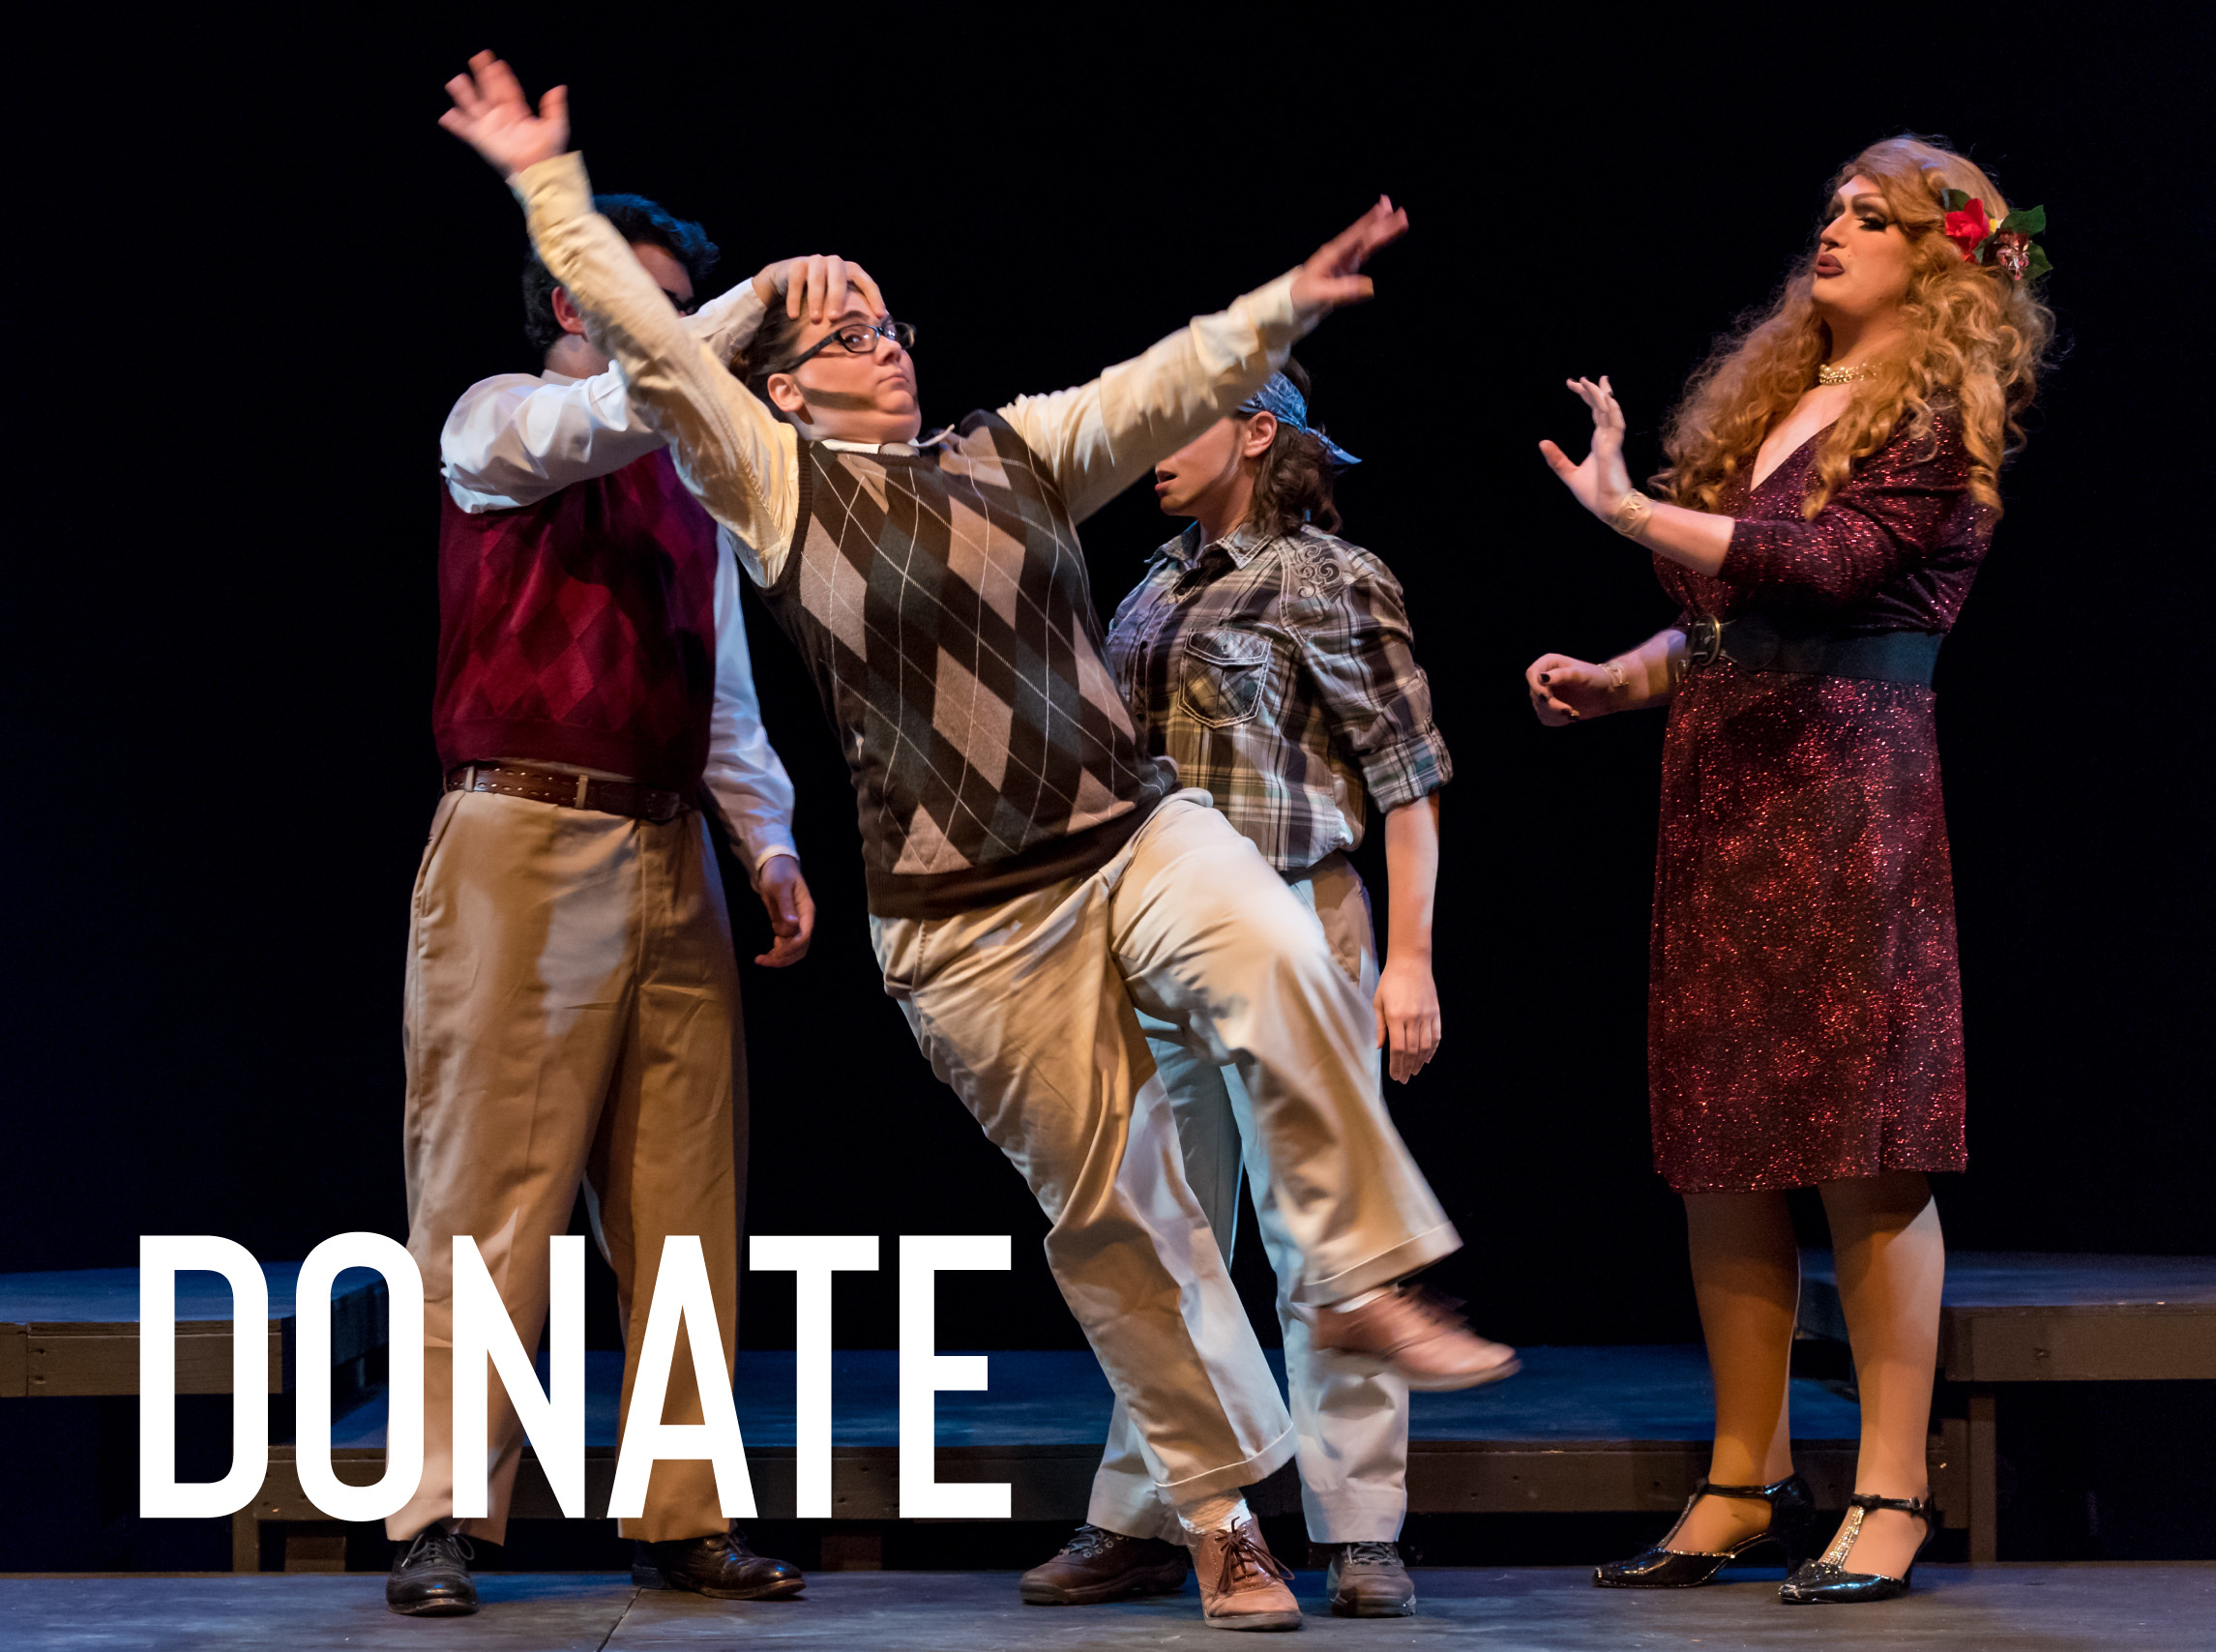 There are a number of ways to contribute - To continue our legacy of quality performances, Huntsville Shakespeare relies on both financial gifts and in-kind donations. For this summer's performance, we're actively seeking in-kind donations of:- costume items- set items- other items needed